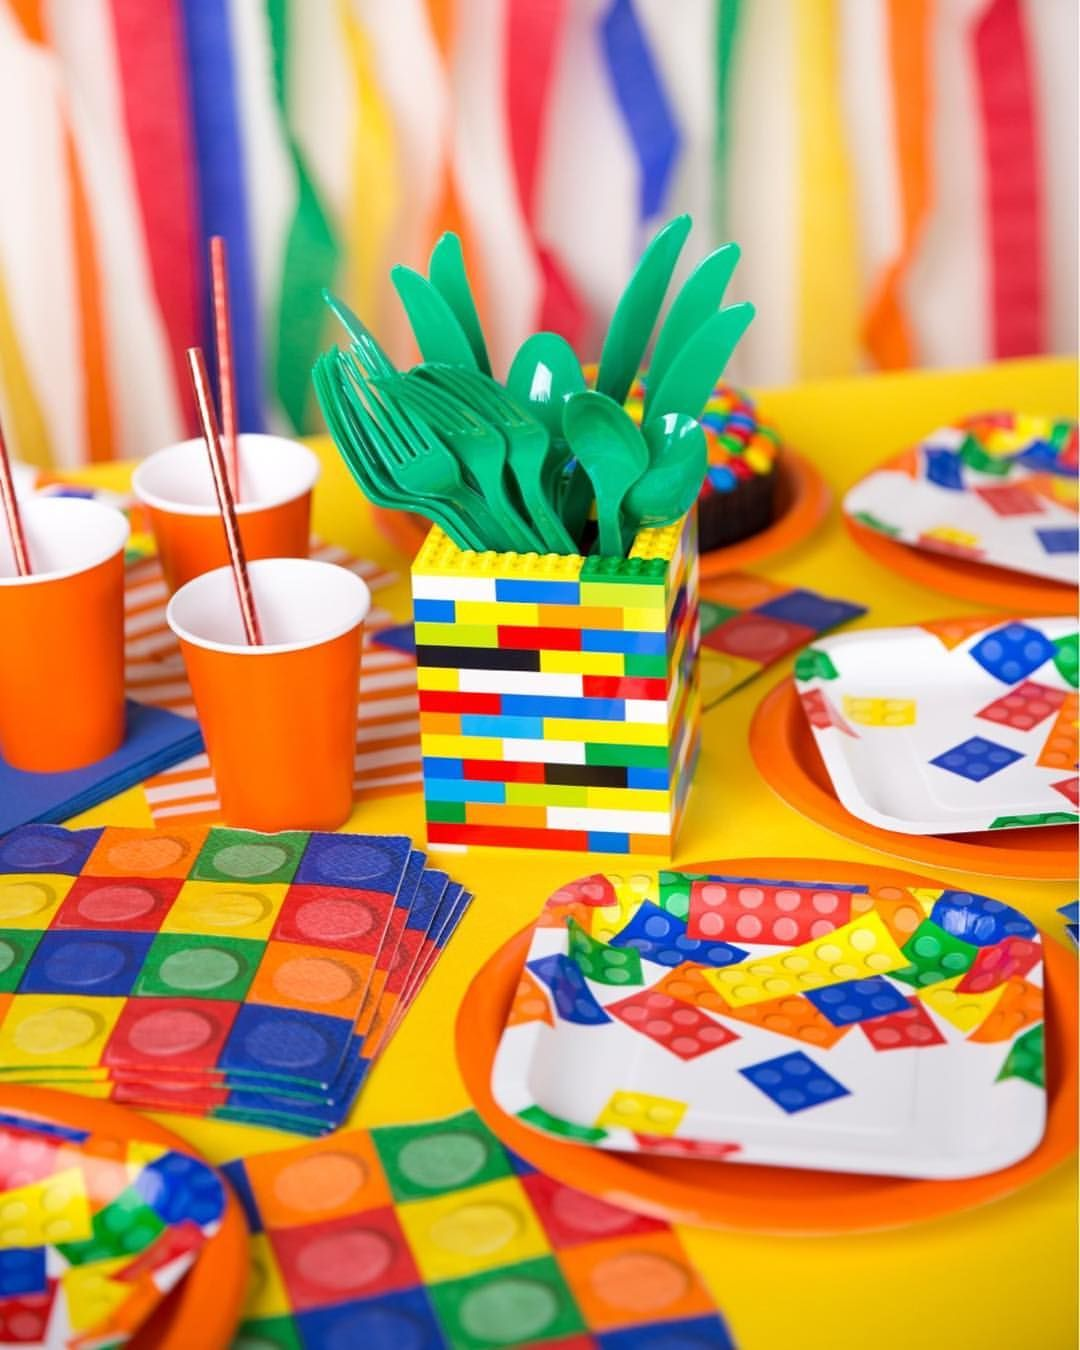 Ain't no party like a LEGO PARTY! ️ Here's an idea for